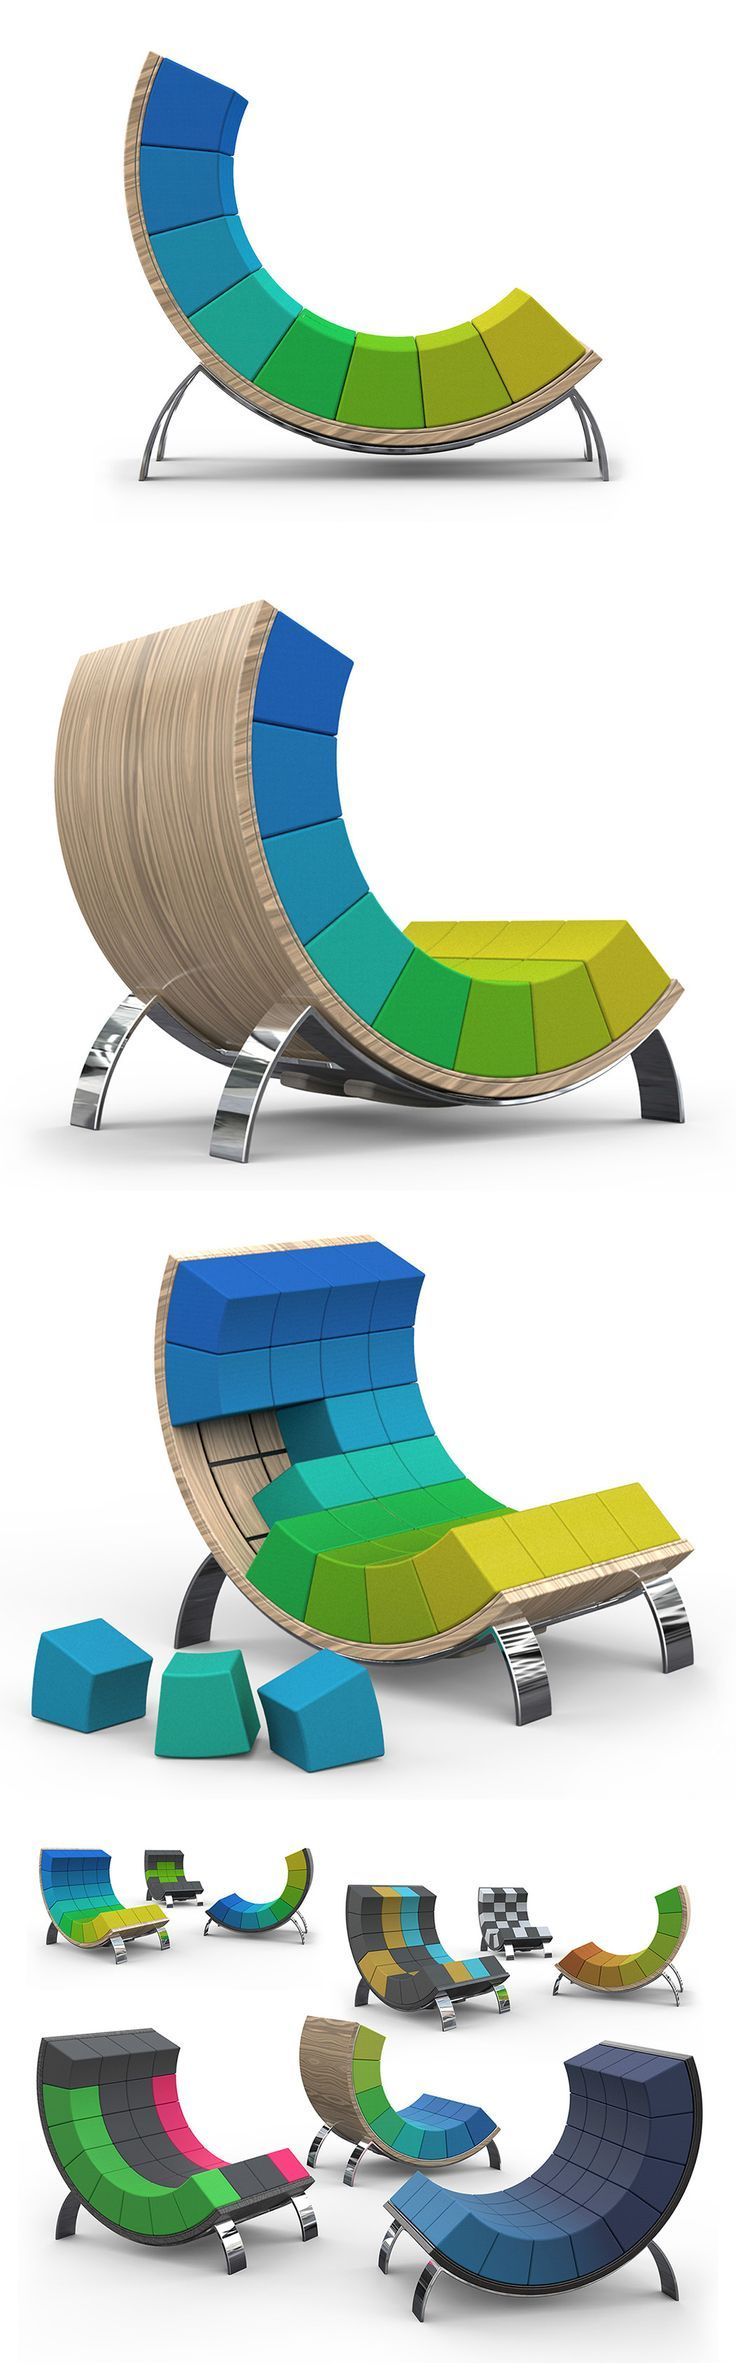 best chairs u seating images on pinterest chair chairs and